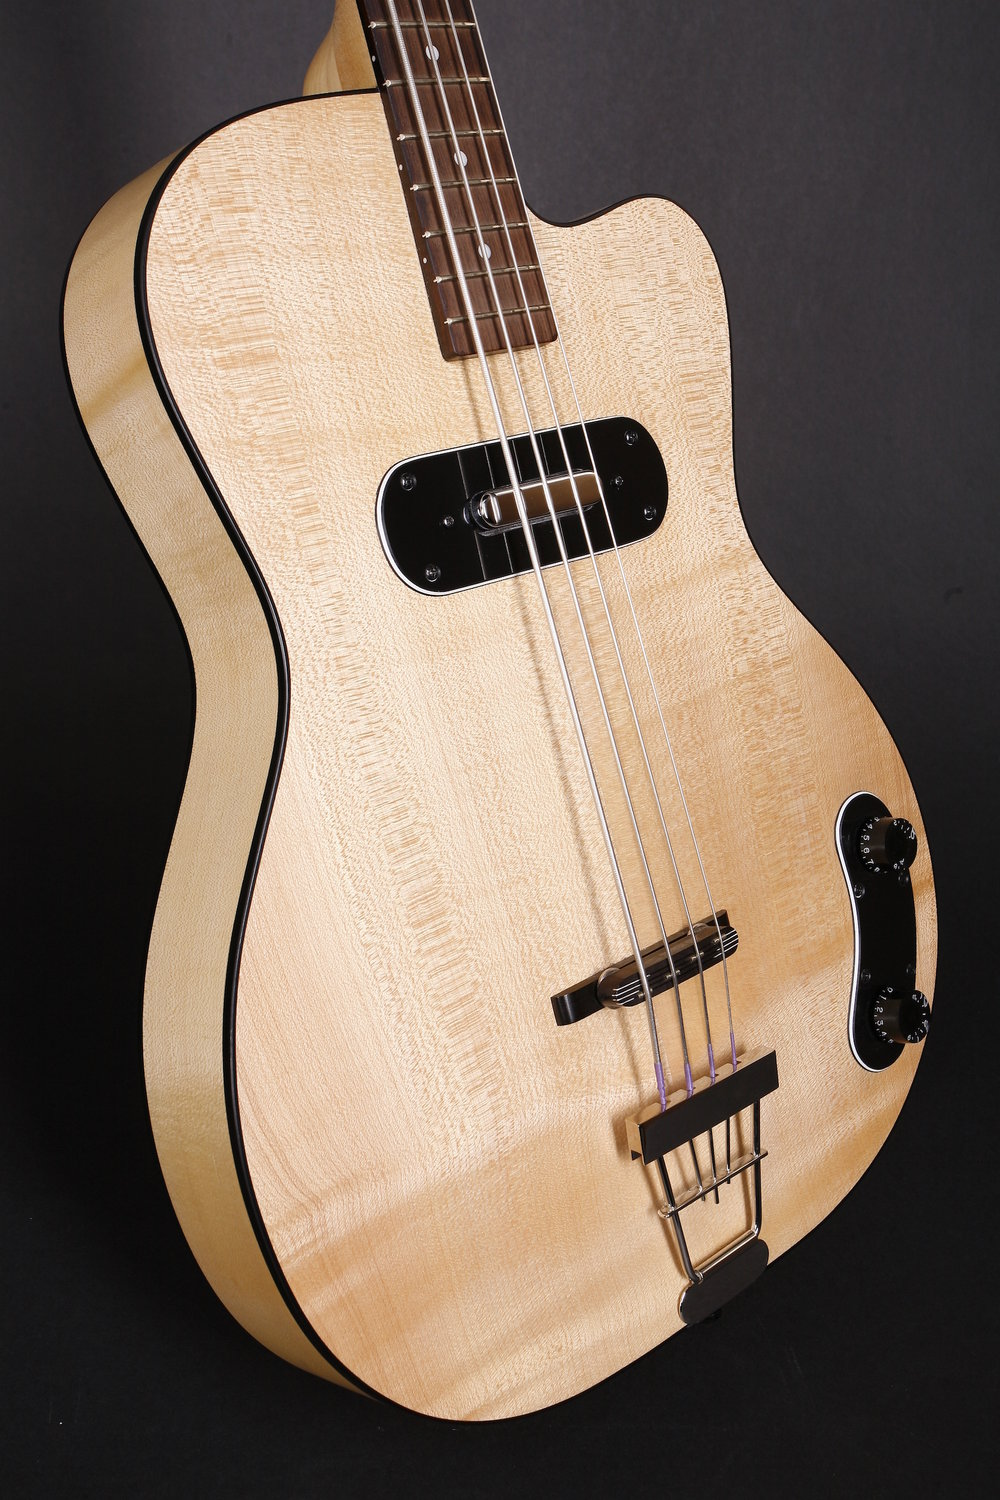 Semi - The Hot Wire Blues Bass has a semi-resonant maple body with a flat, solid top, and a round back. The set-in Medium Scale maple neck sports a rosewood fretboard with 20 frets.